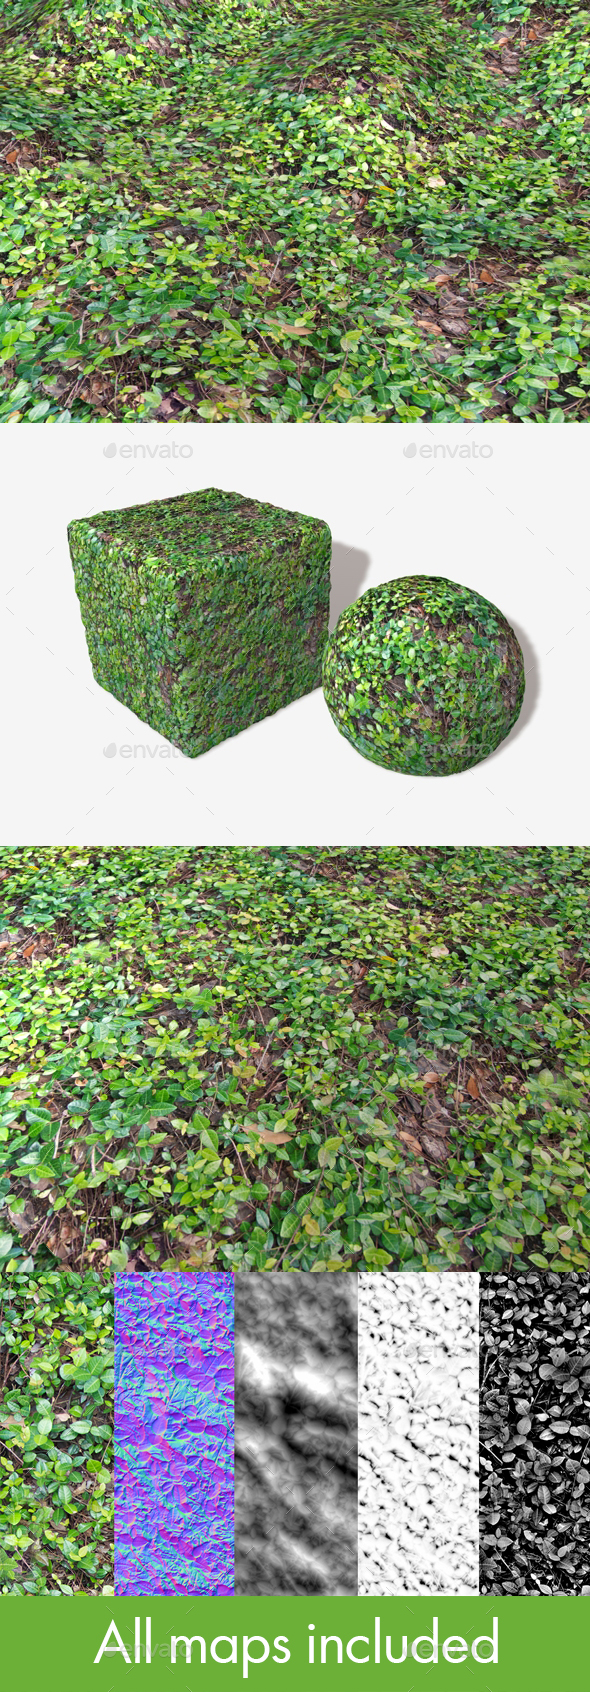 3DOcean Vine Covered Ground Seamless Texture 19752063